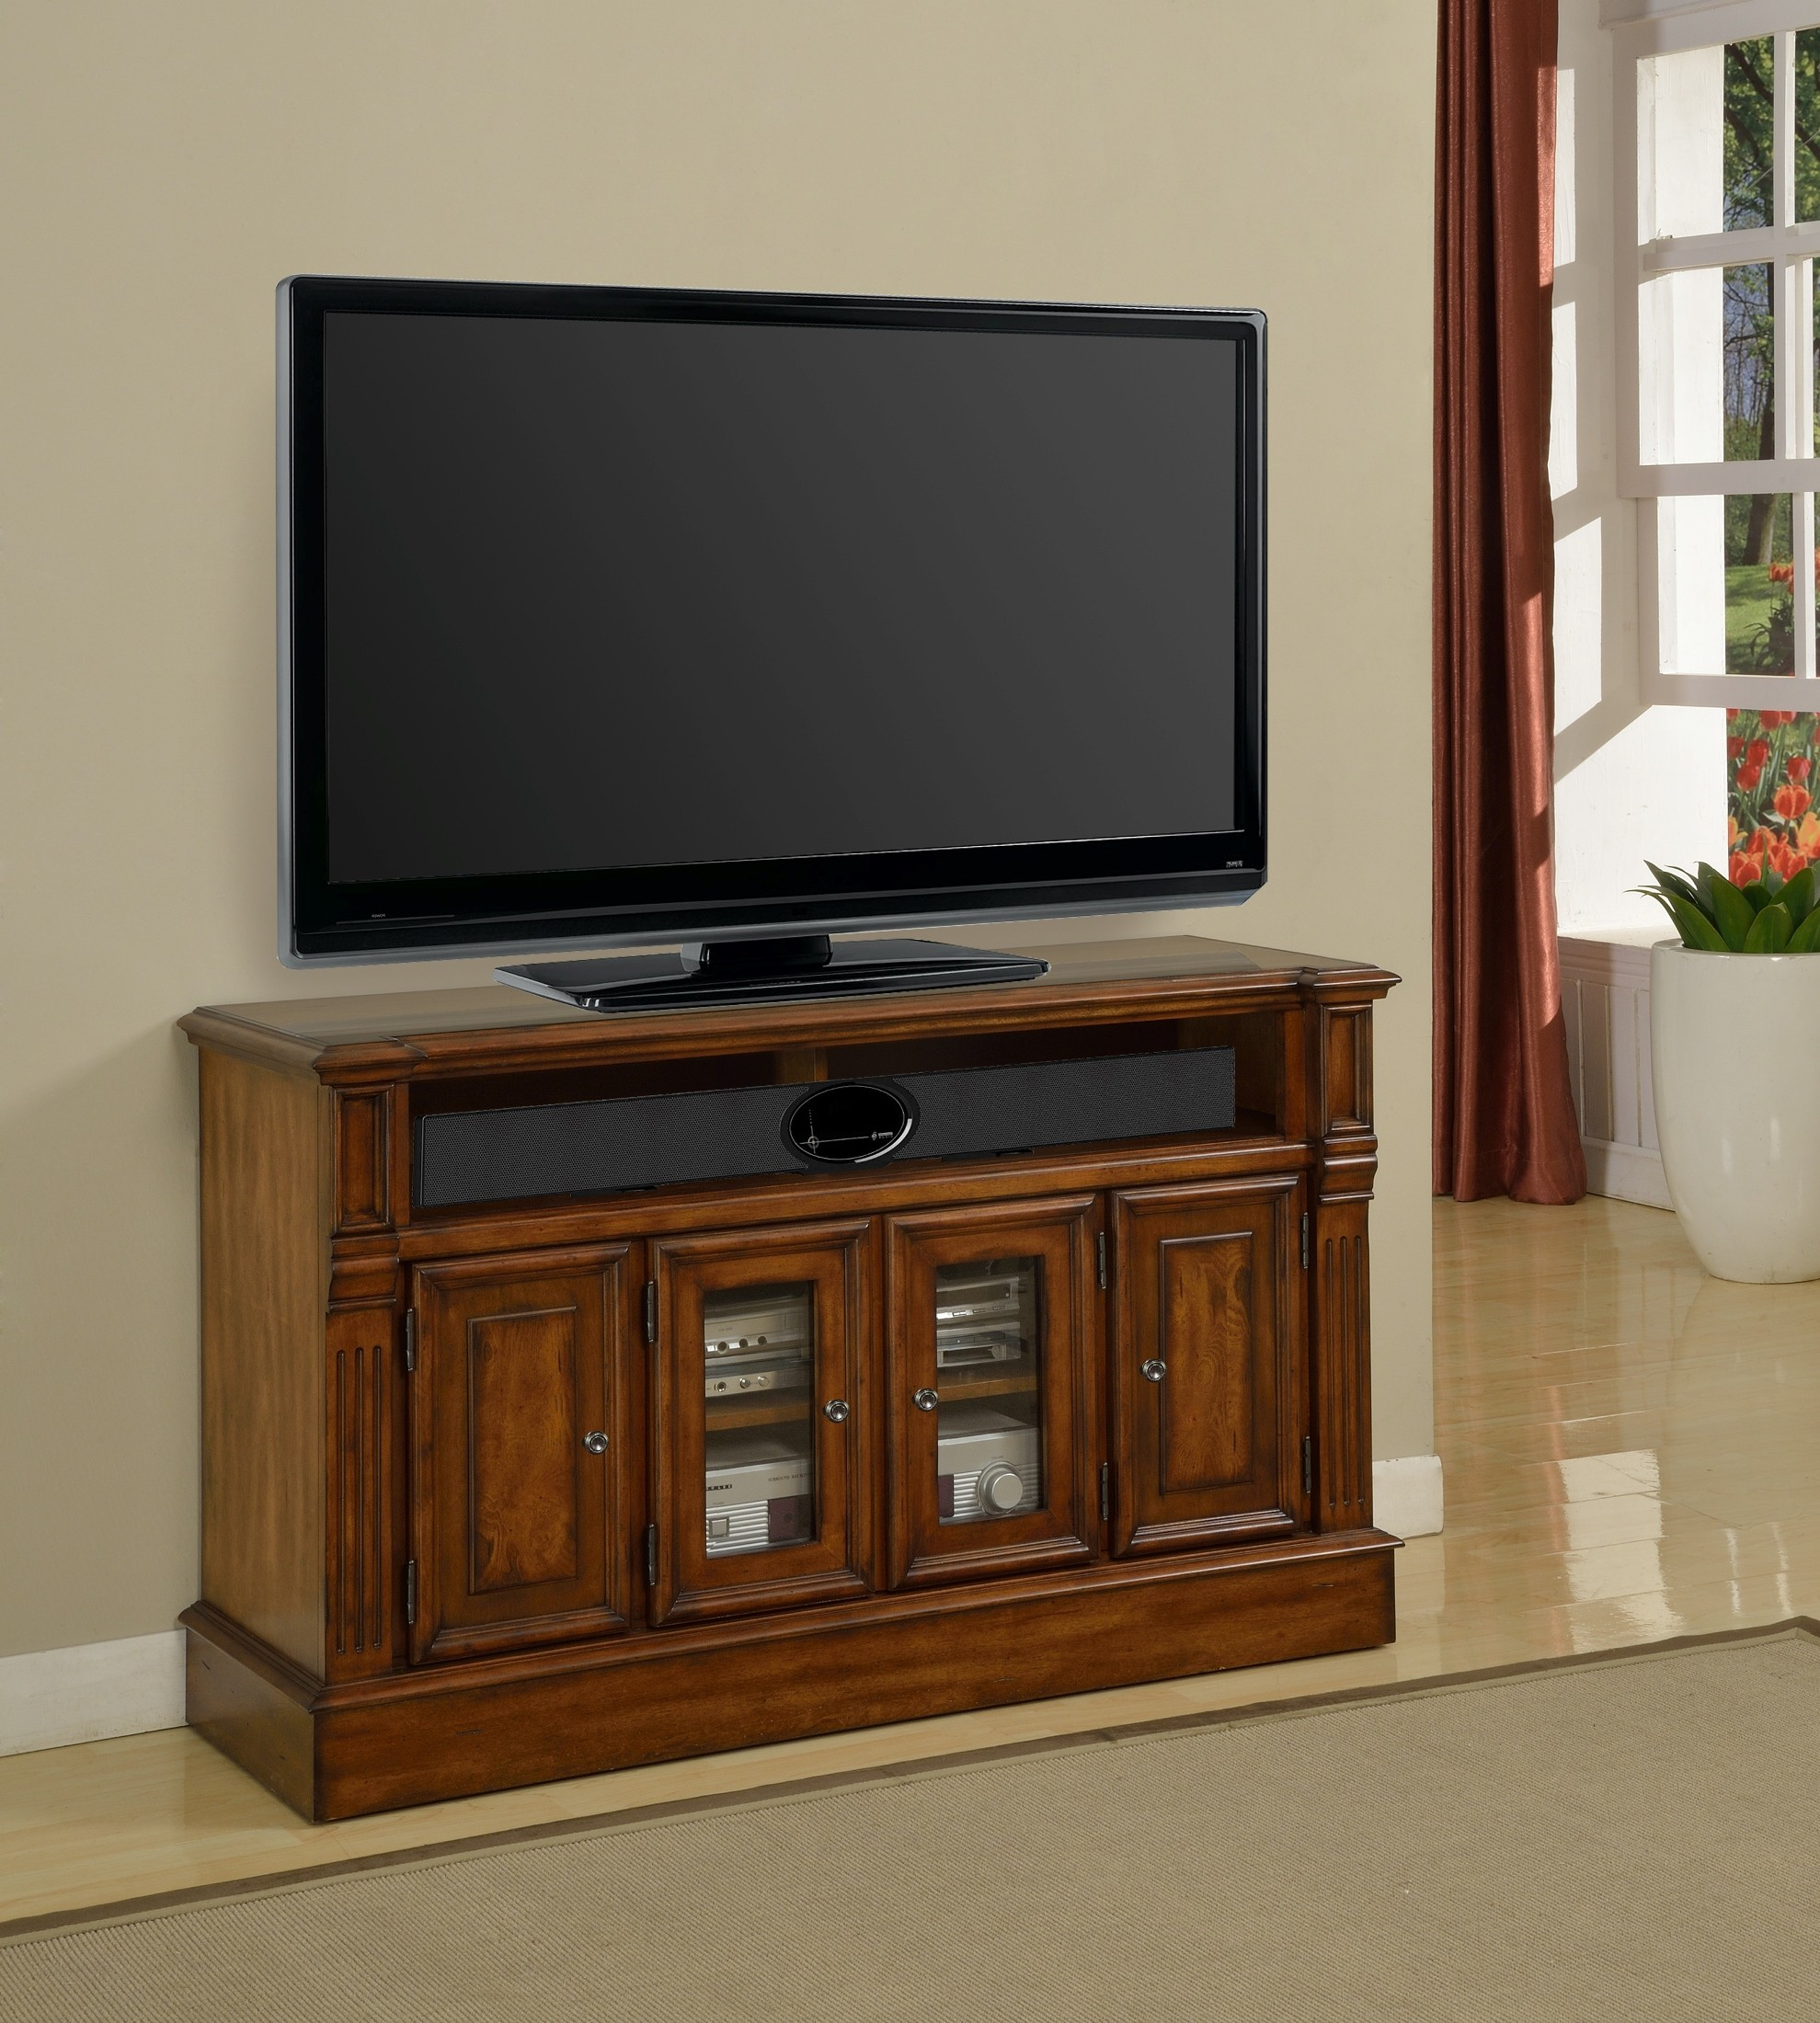 Toscano Antique Vintage Dark Chestnut 50 Tv Console From Parker House Tos 50 Coleman Furniture